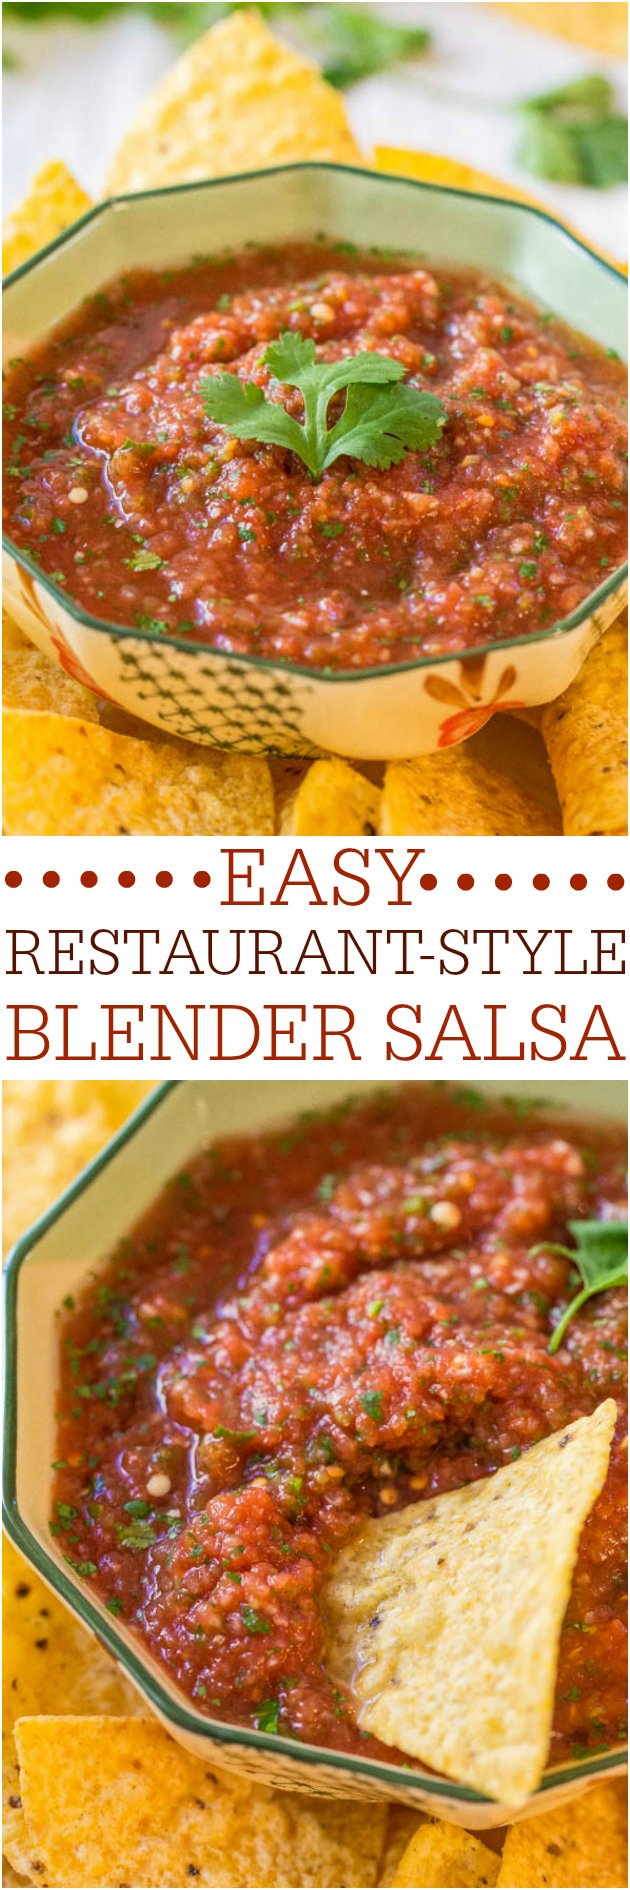 Easy salsa recipe that makes restaurant style salsa